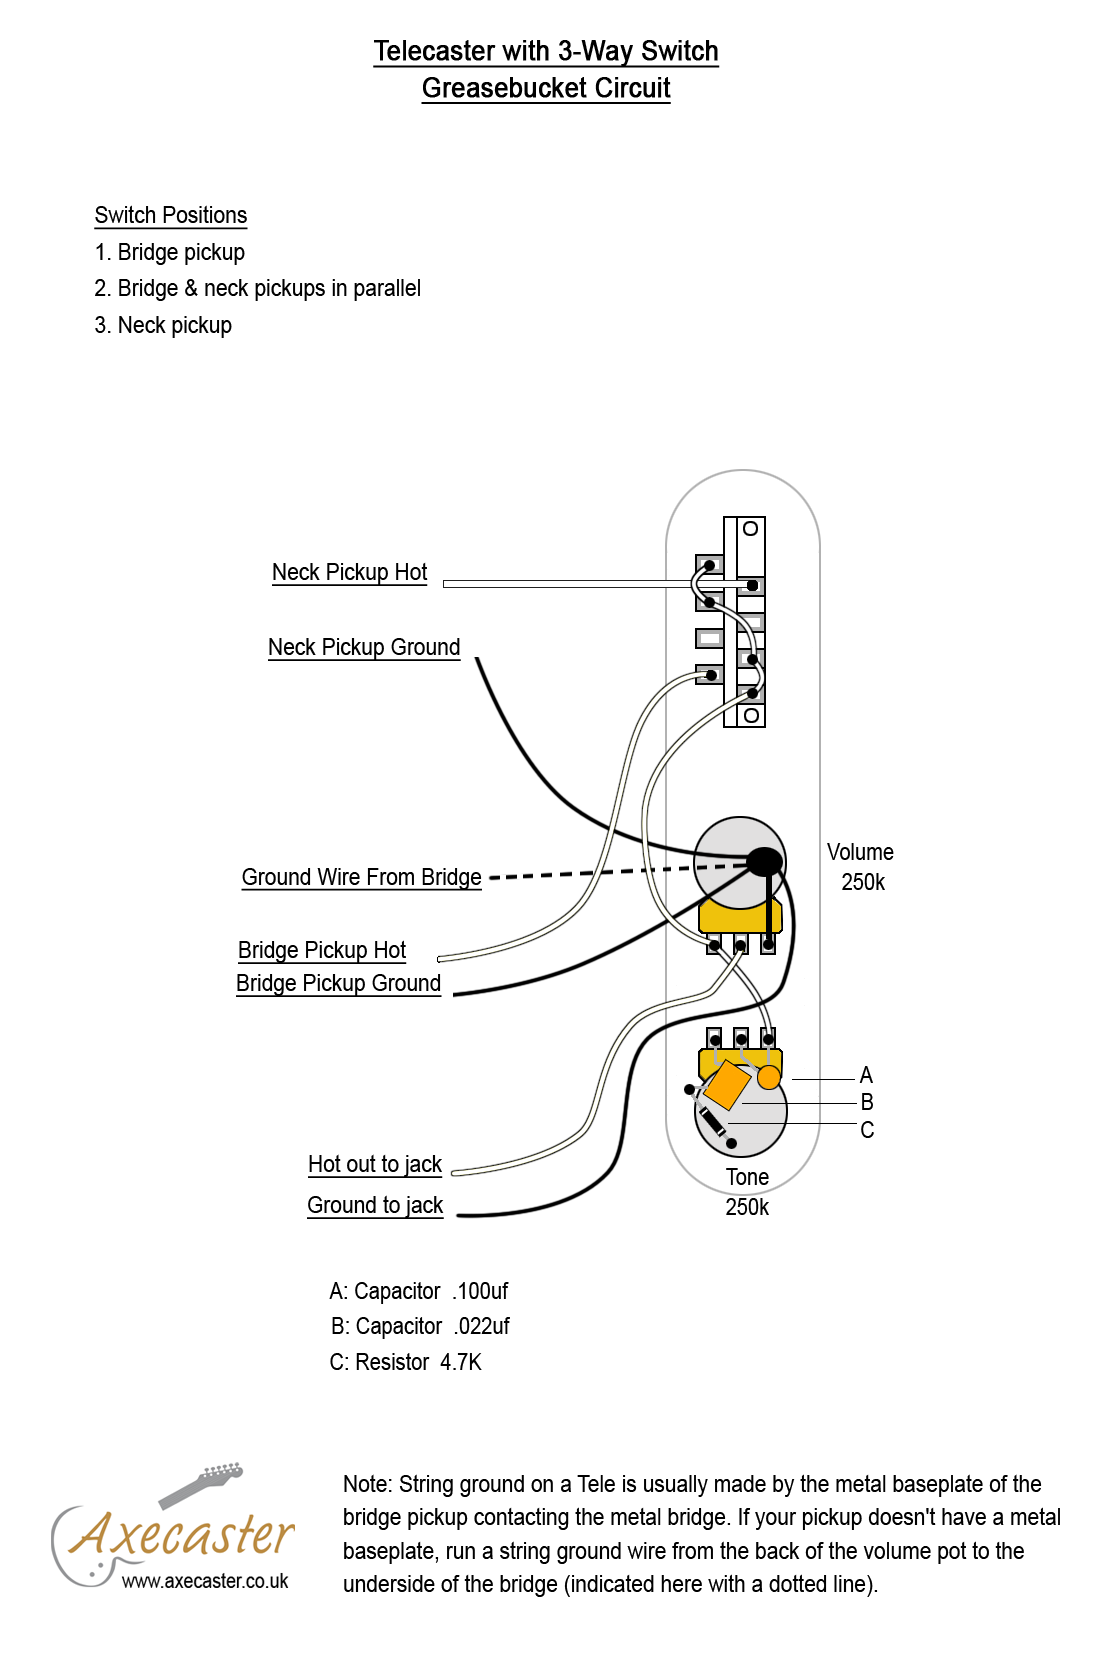 wiring diagrams axecaster build it how you want it be hard to see everything on the fender diagram here s a great video of mike eldred from the fender custom shop talking about the greasebucket circuit